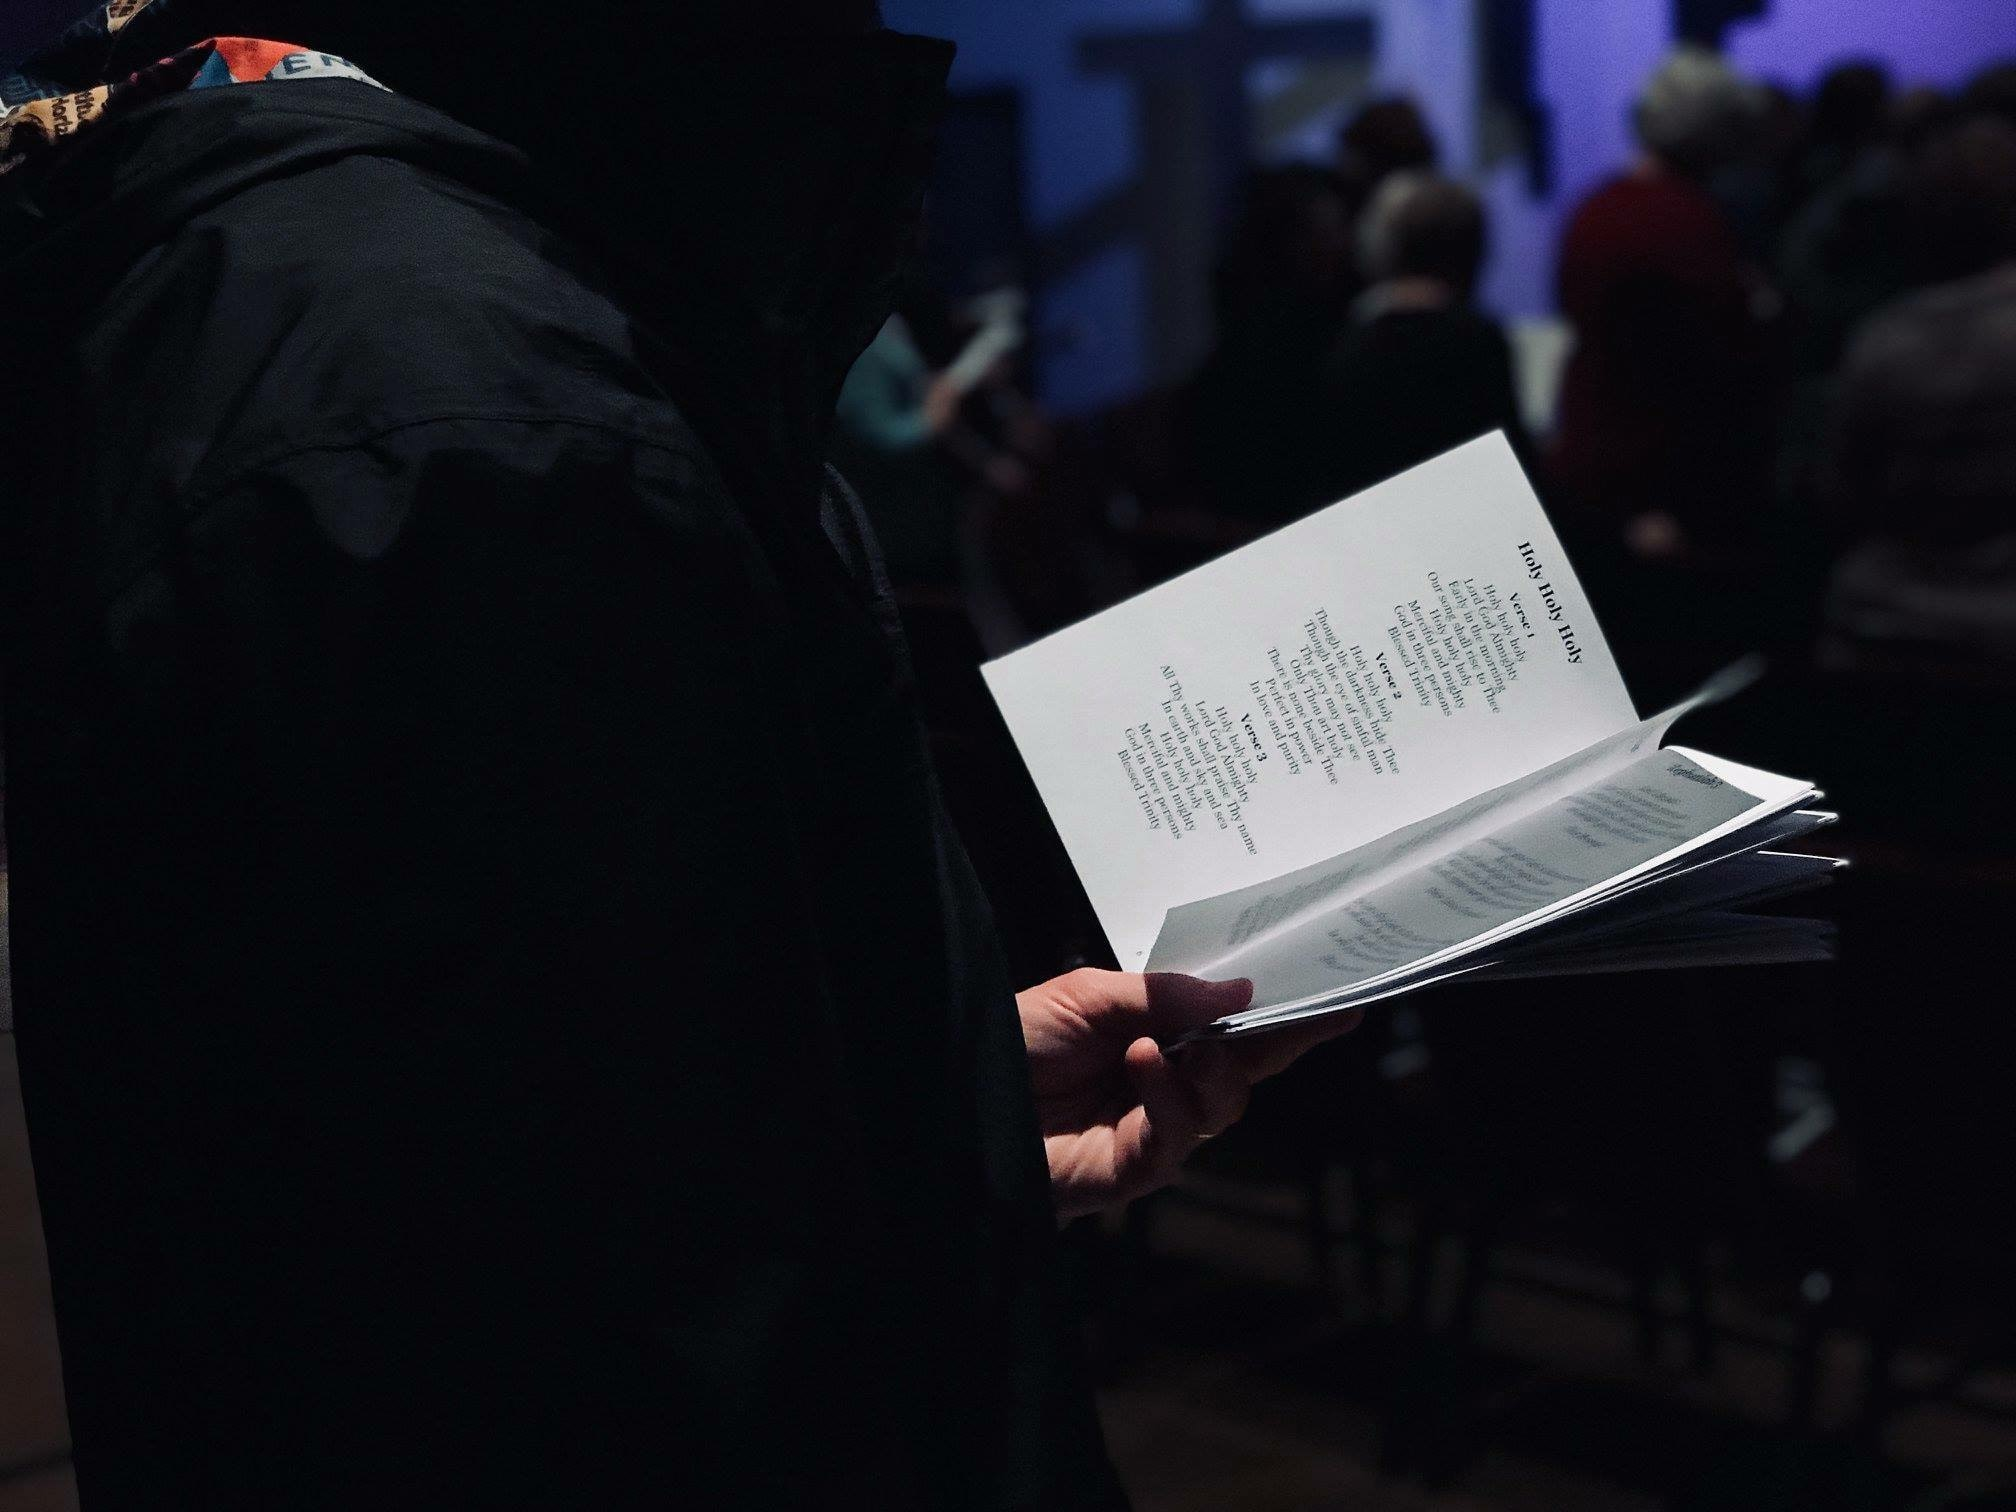 Image shows someones hands holding an order of service